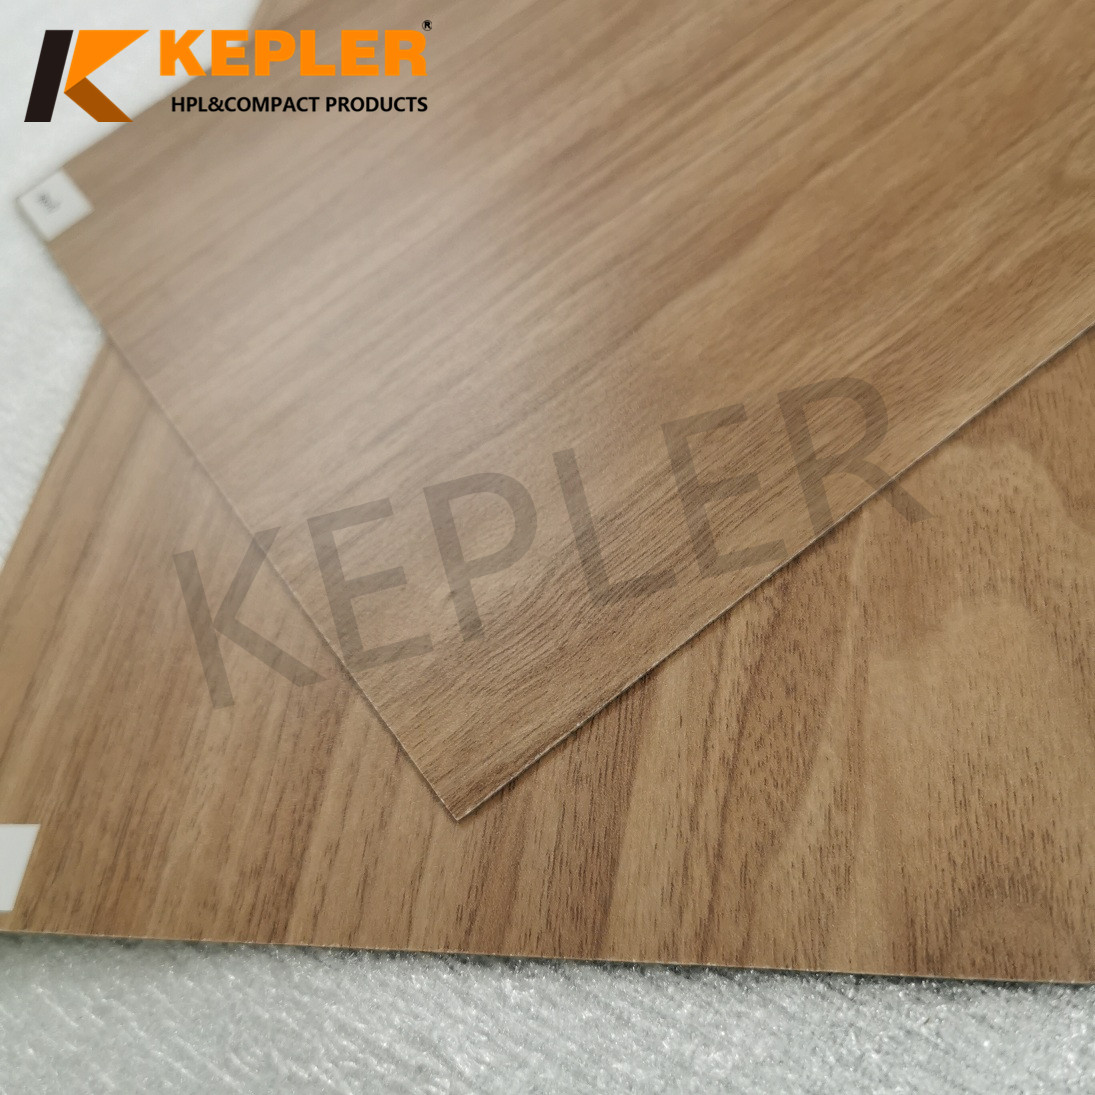 Kepler 0.8mm Matt Finish HPL Sheet Compact Laminate Board 30016